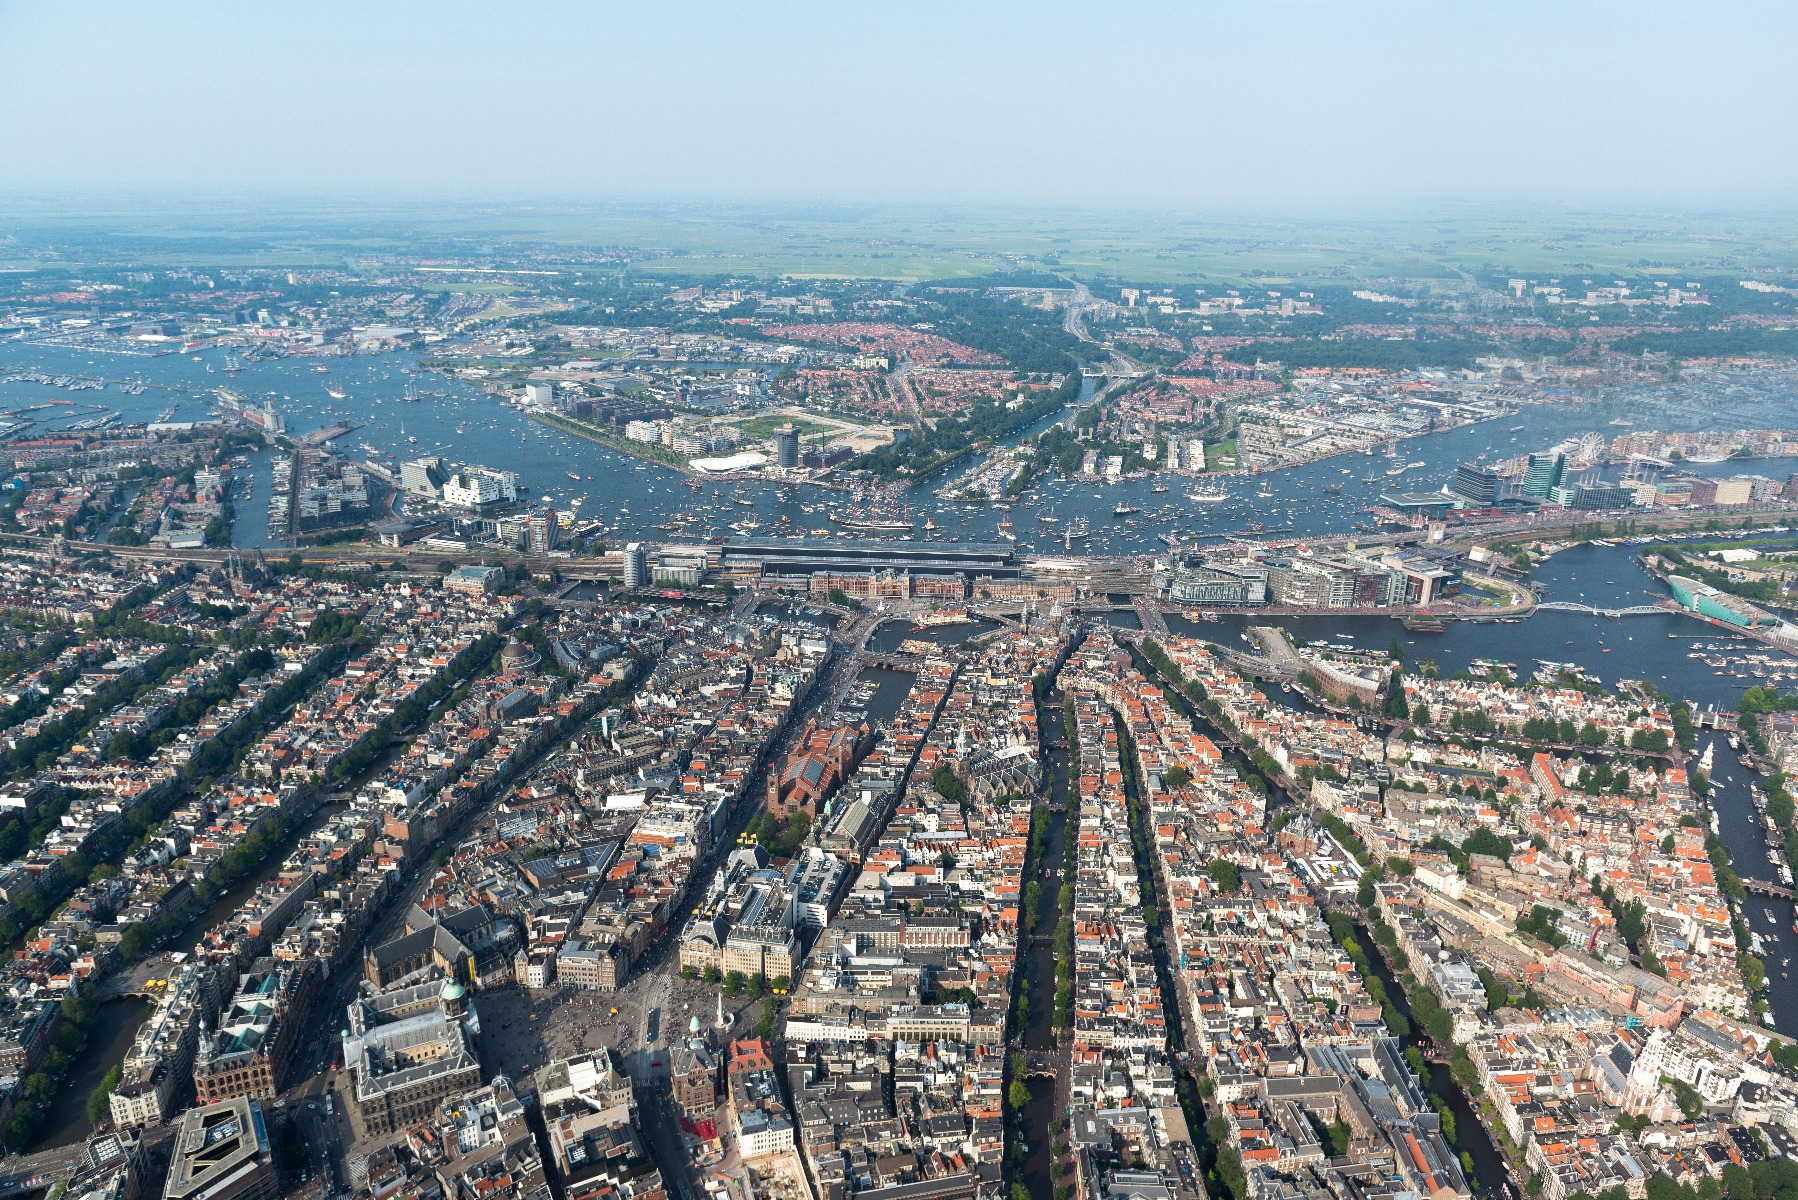 Amsterdam from above during SAIL Amsterdam 2015